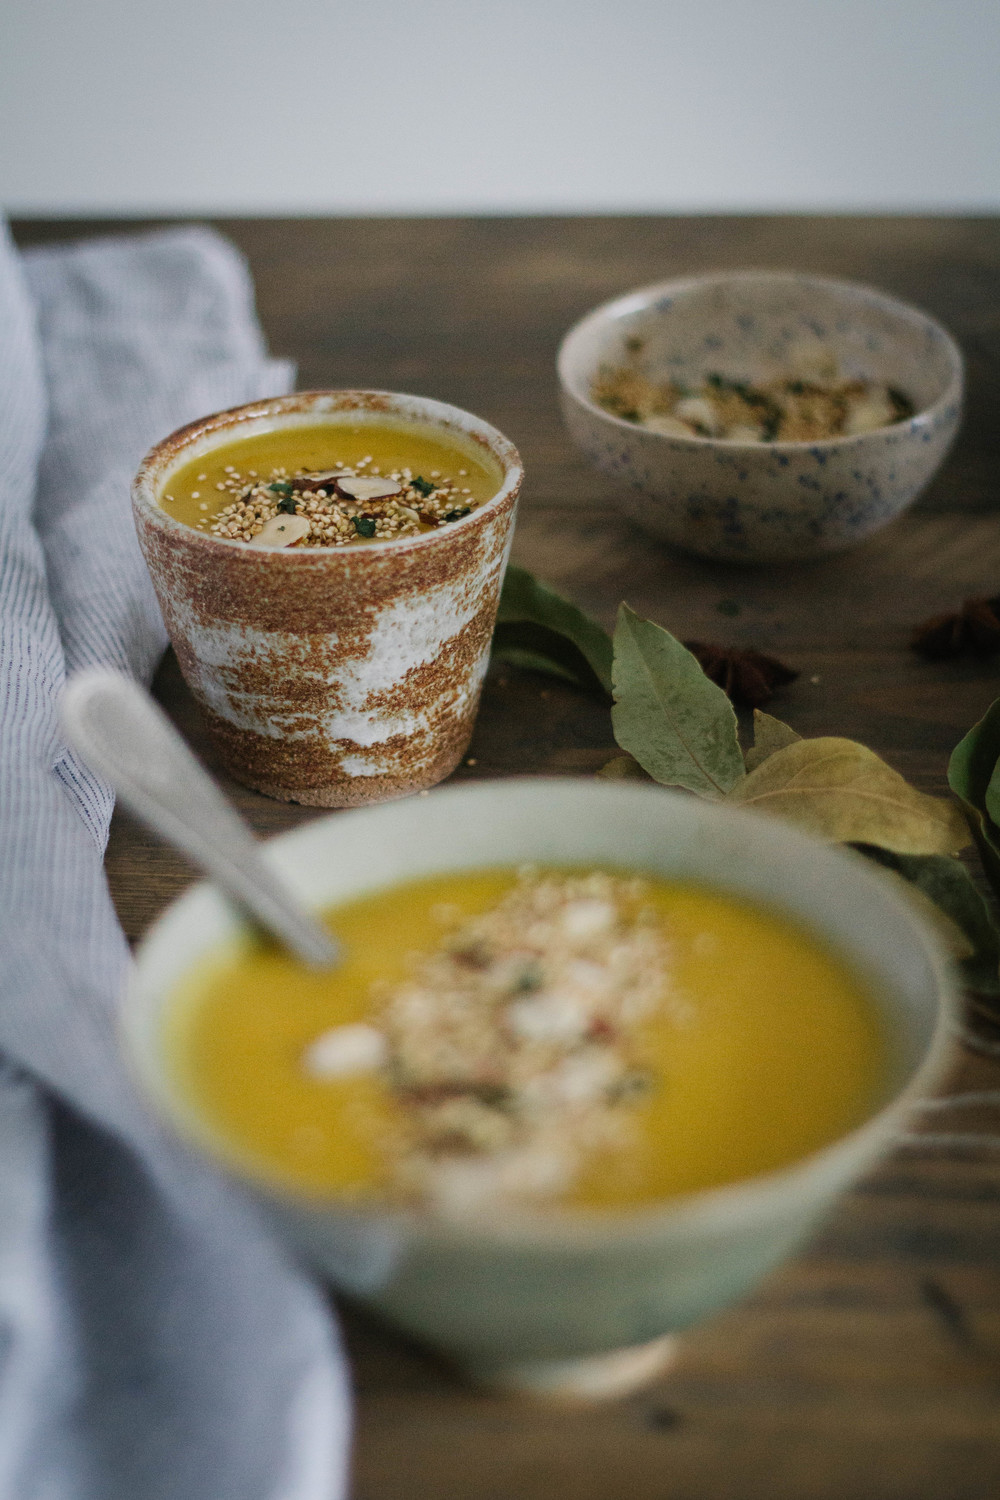 Sweet potato & jerusalem artichoke soup with anice